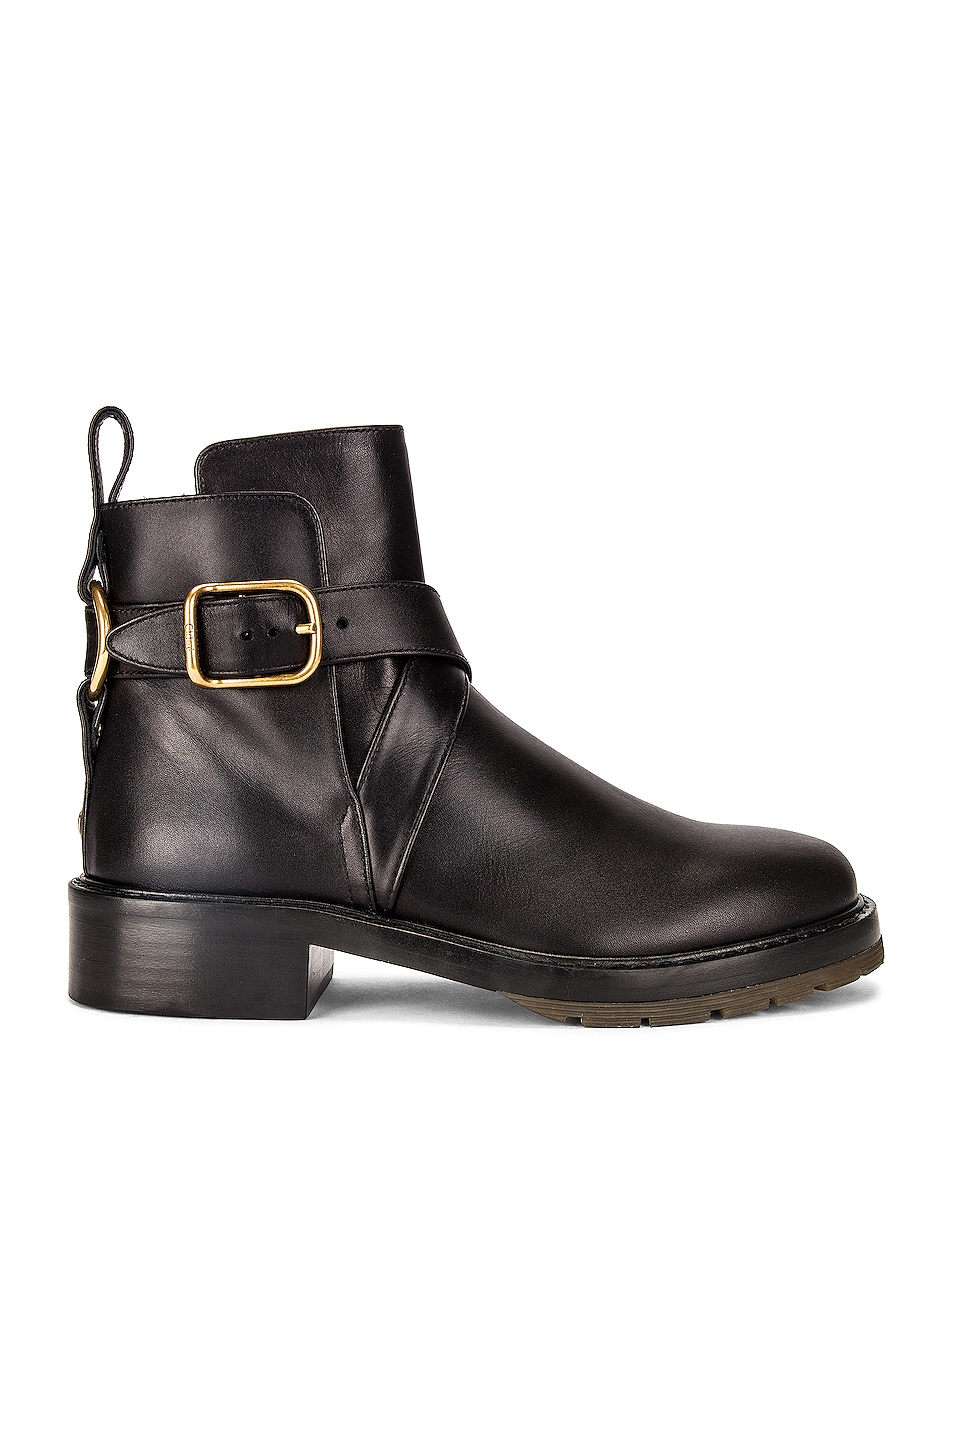 Image 1 of Chloe Diane Ankle Boots in Black